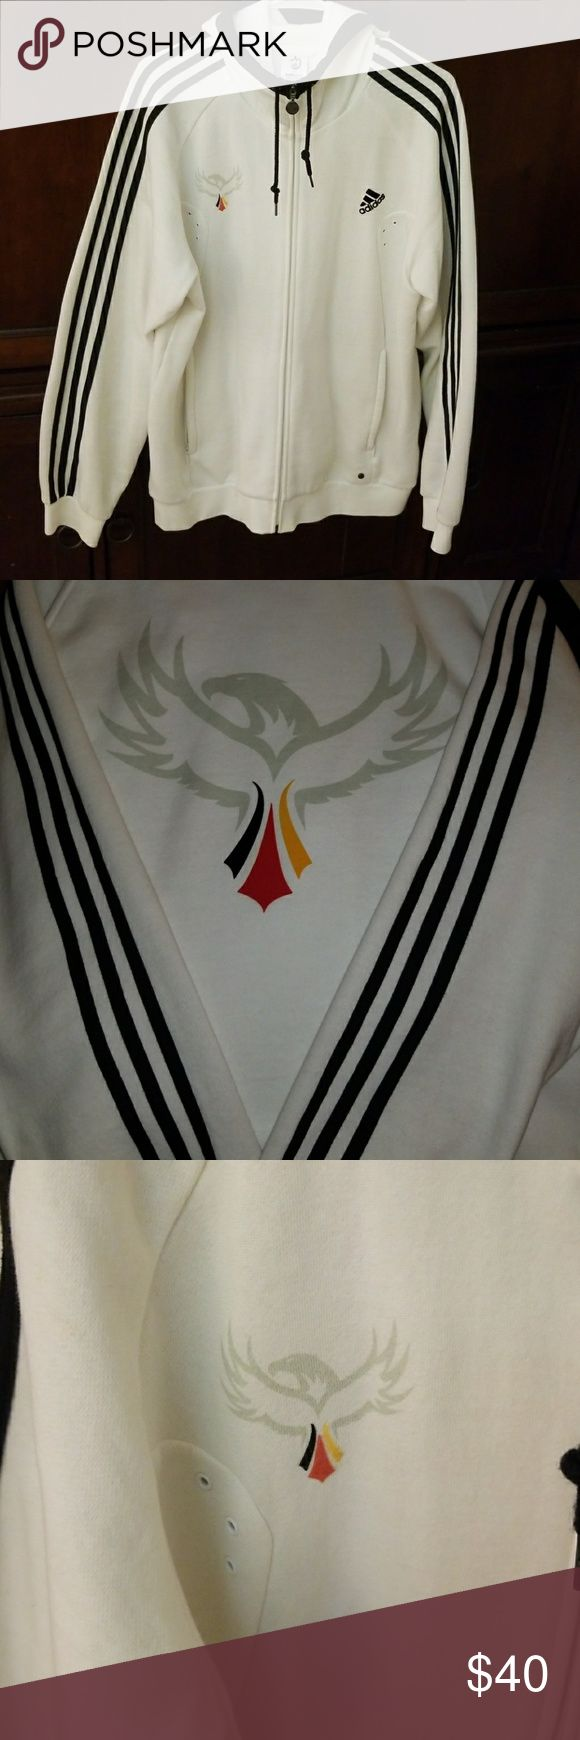 Mens Adidas Germany hoodie Mens Adidas Euro 2008 Germany hoodie. In near pristine condition. Zipped pockets. Very clean and awesome design for the German national team. Size medium but runs a bit big. adidas Jackets & Coats